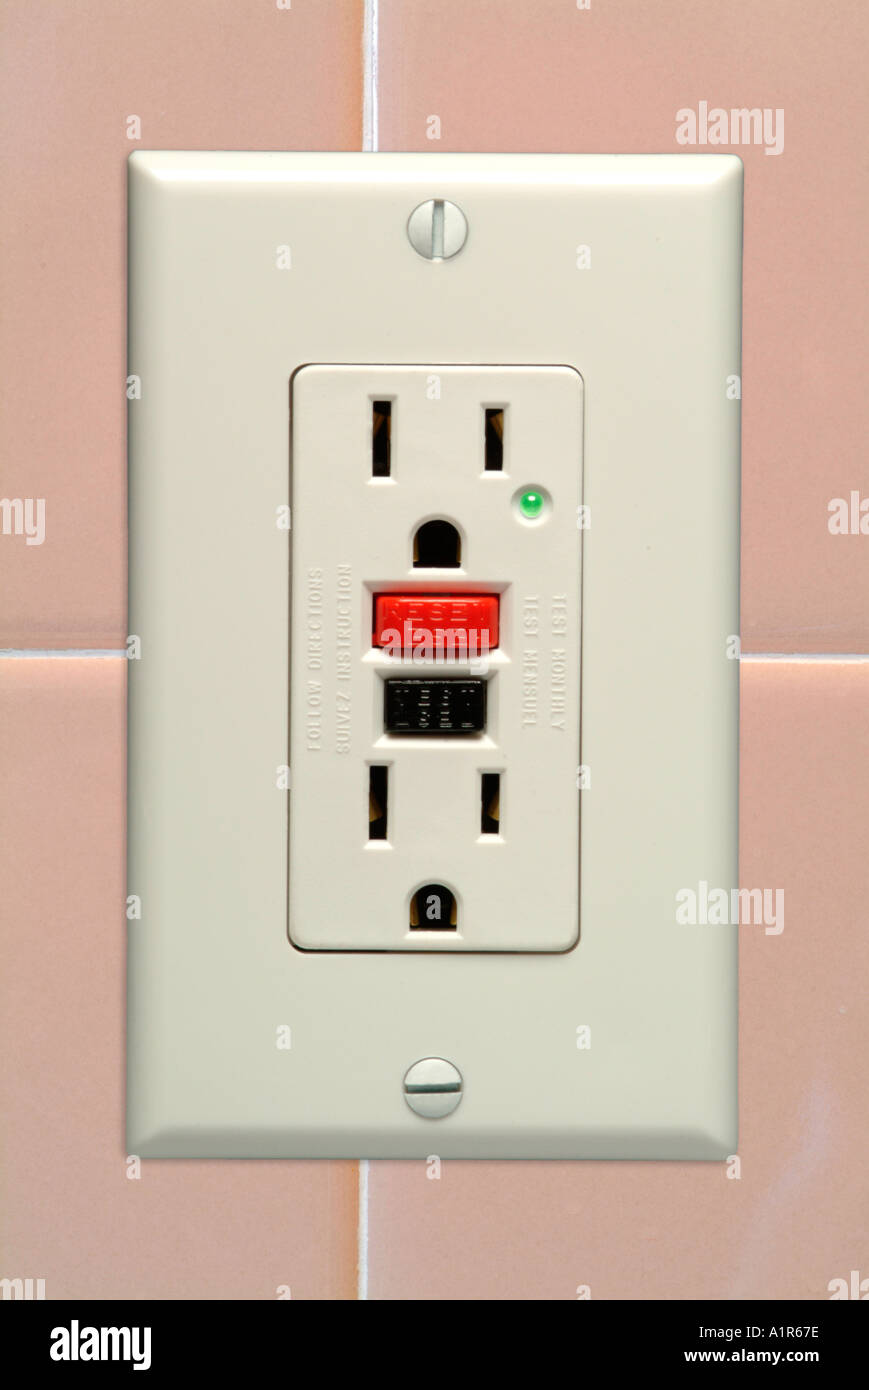 Electric Interrupter Stock Photos Circuit Interrupters A Ground Fault Or Gfci Outlet Image